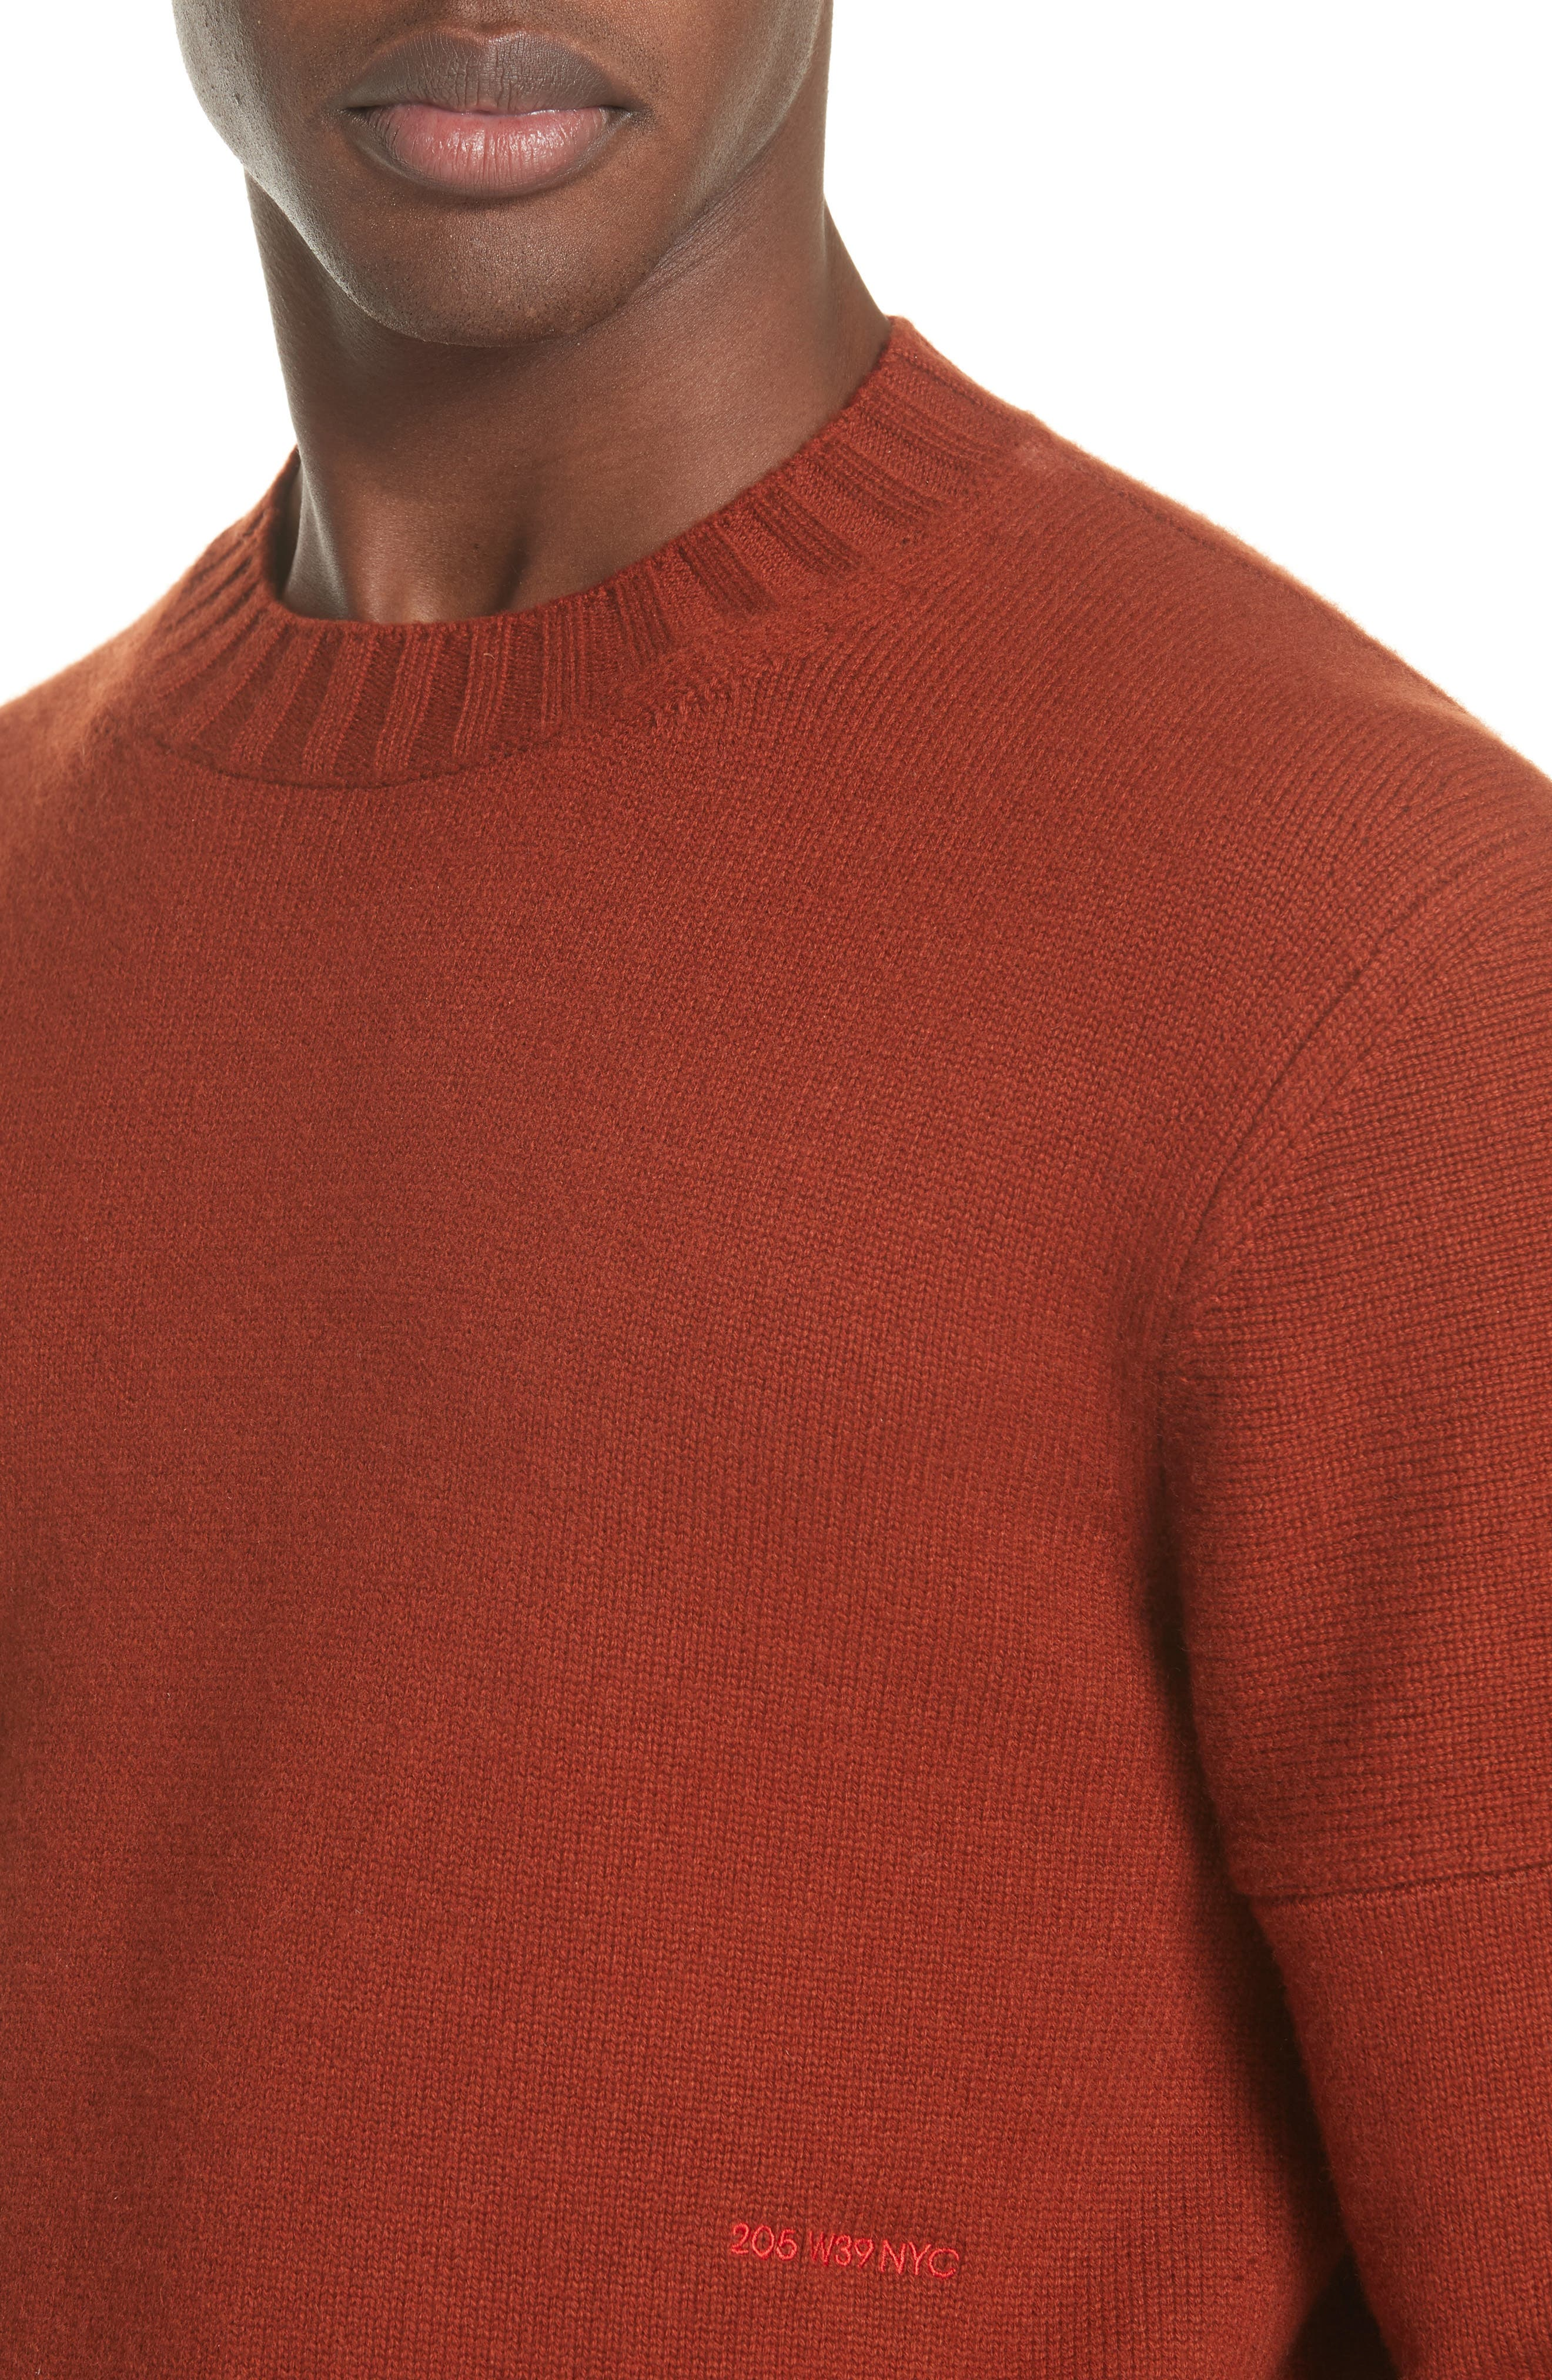 CALVIN KLEIN 205W39NYC,                             Cashmere Sweater,                             Alternate thumbnail 4, color,                             605